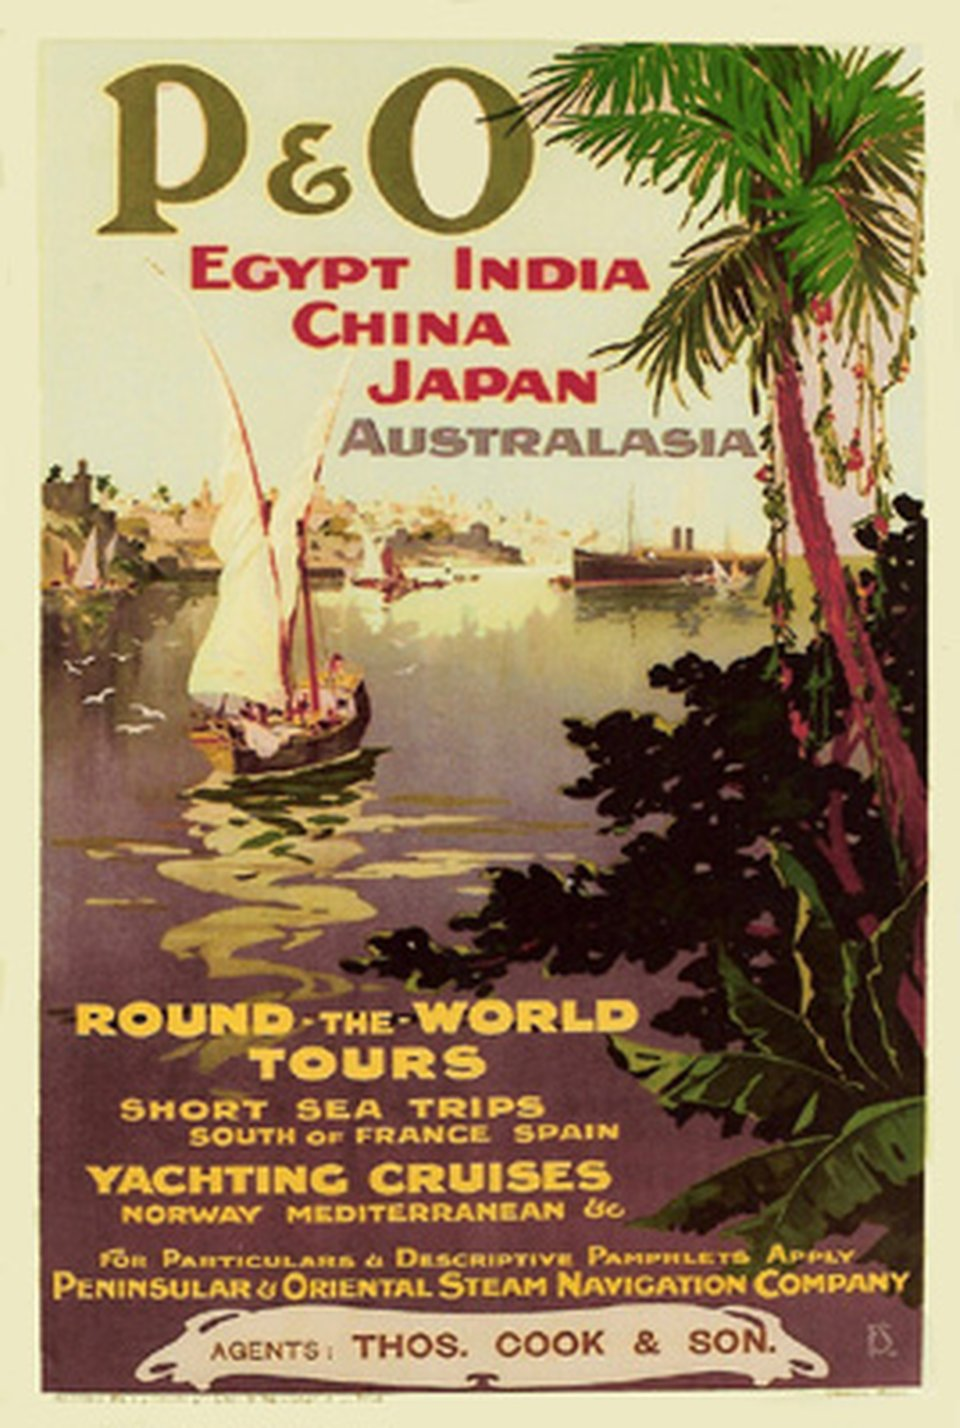 P&O, Peninsular & Oriental Steam Navigation Company, Egypt India China Japan Australia – Affiche ancienne – F.S. – 1925